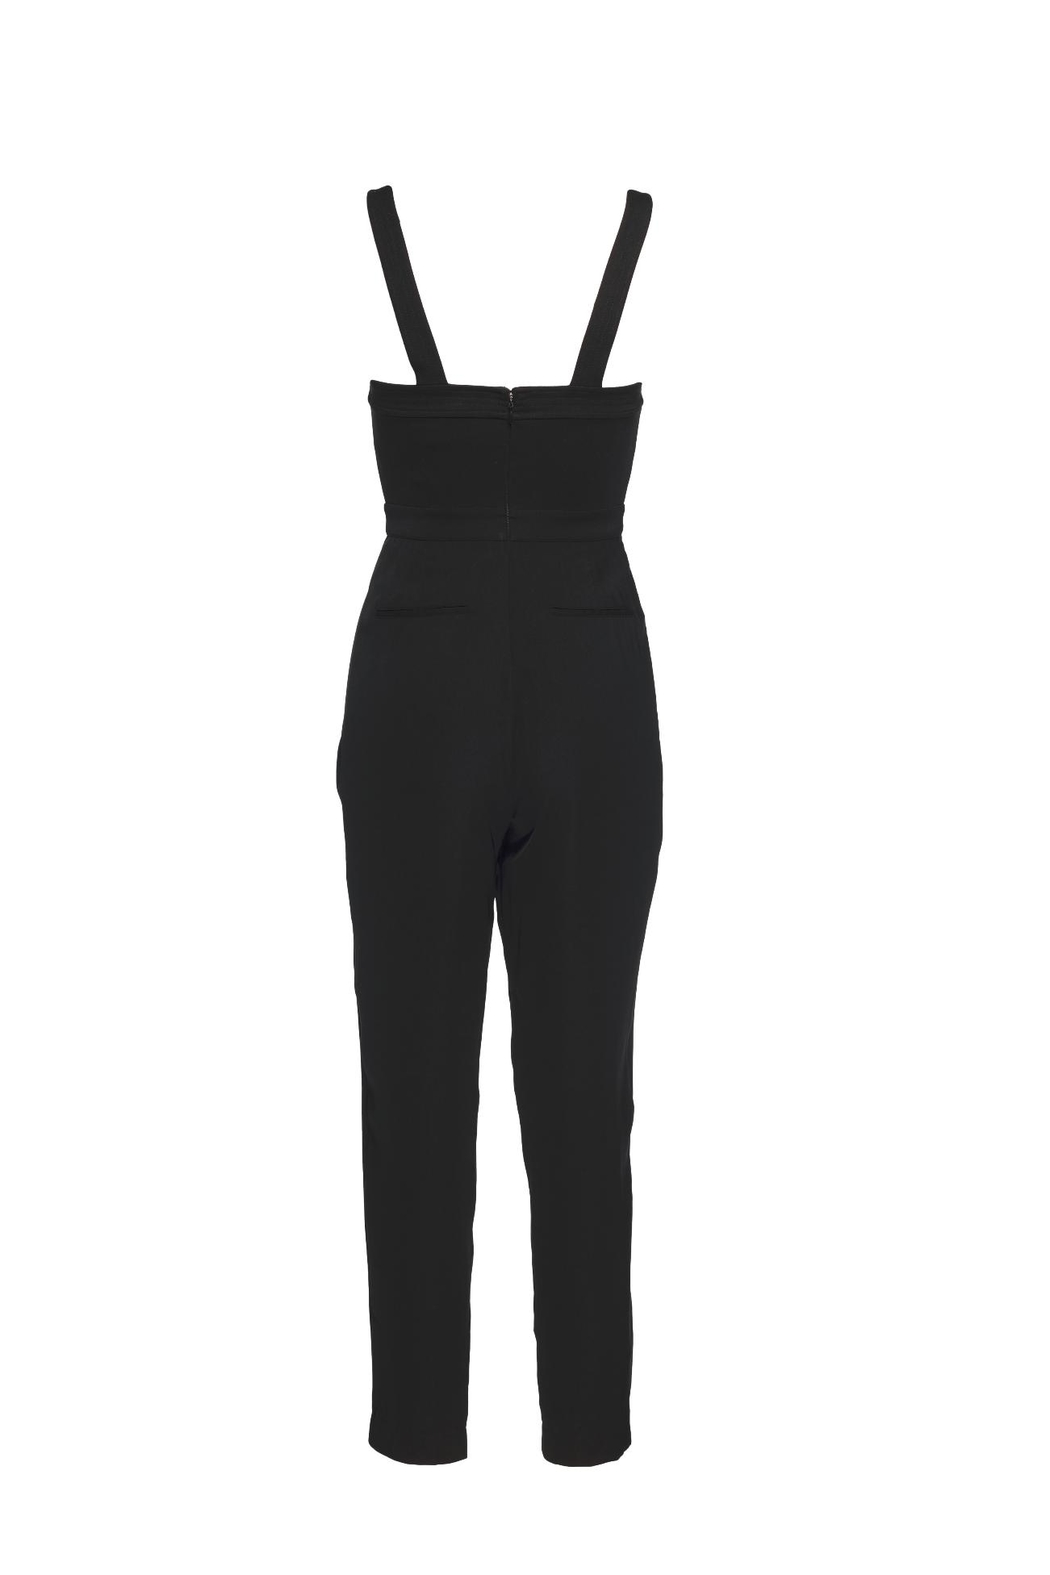 Ali & Jay The Hills Party Jumpsuit - Front Full Image